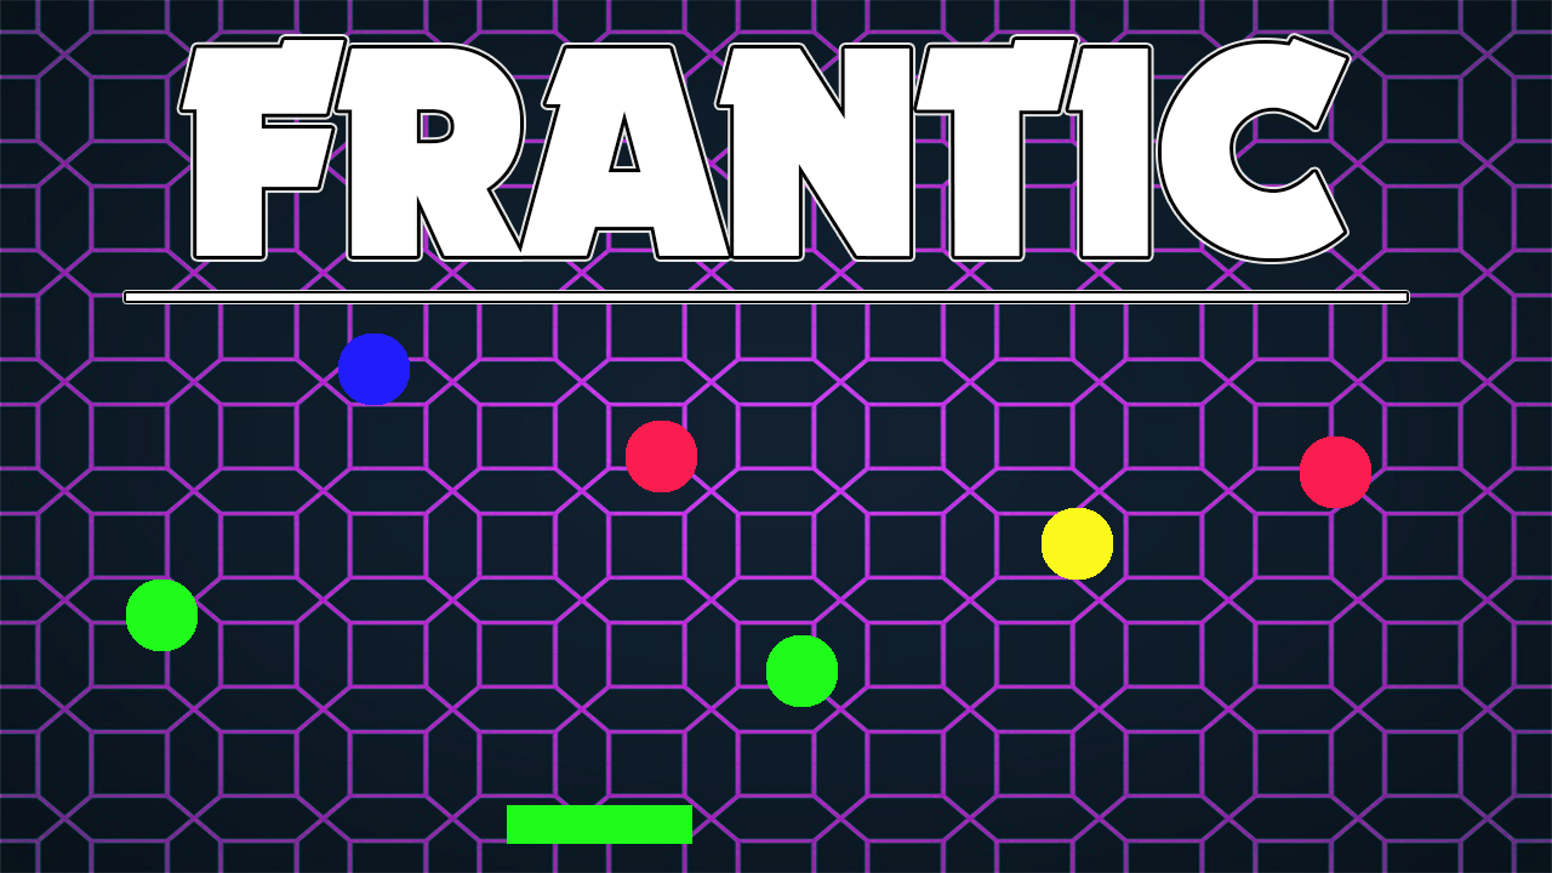 Frantic is a retro themed game which focuses on quick reflexes. Its a mix between the iconic arcade games Pong and Coin dropper